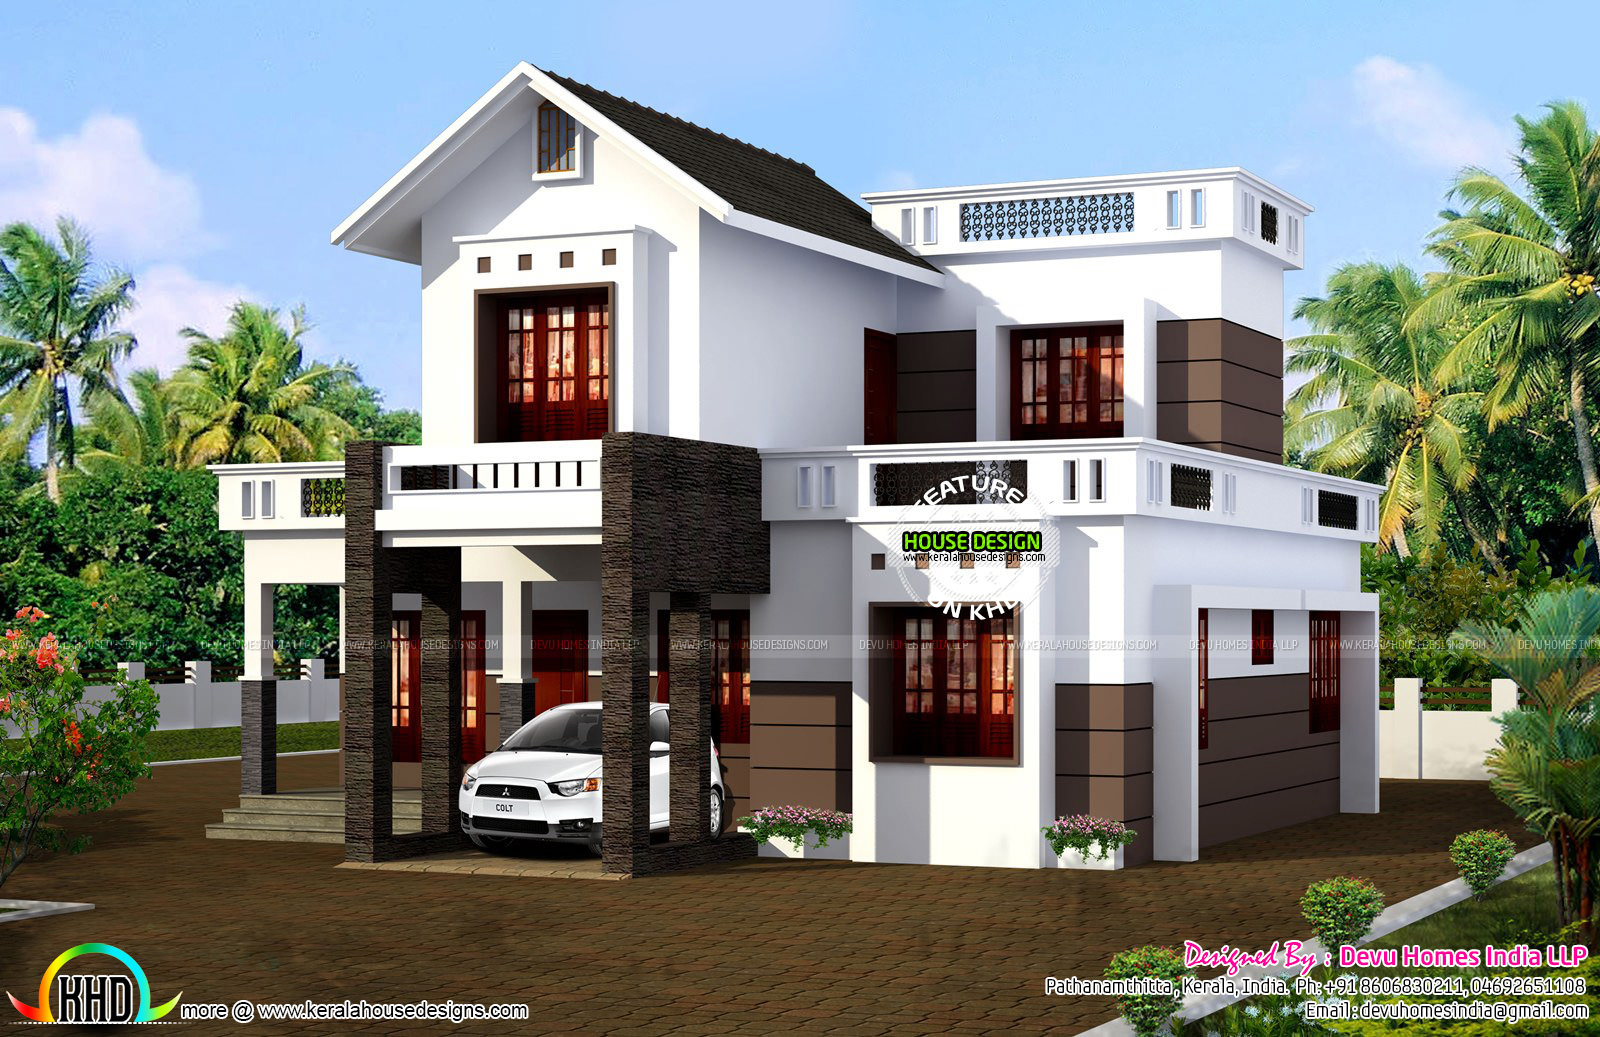 Simple 1524 sq ft house plan kerala home design and for Simple house design